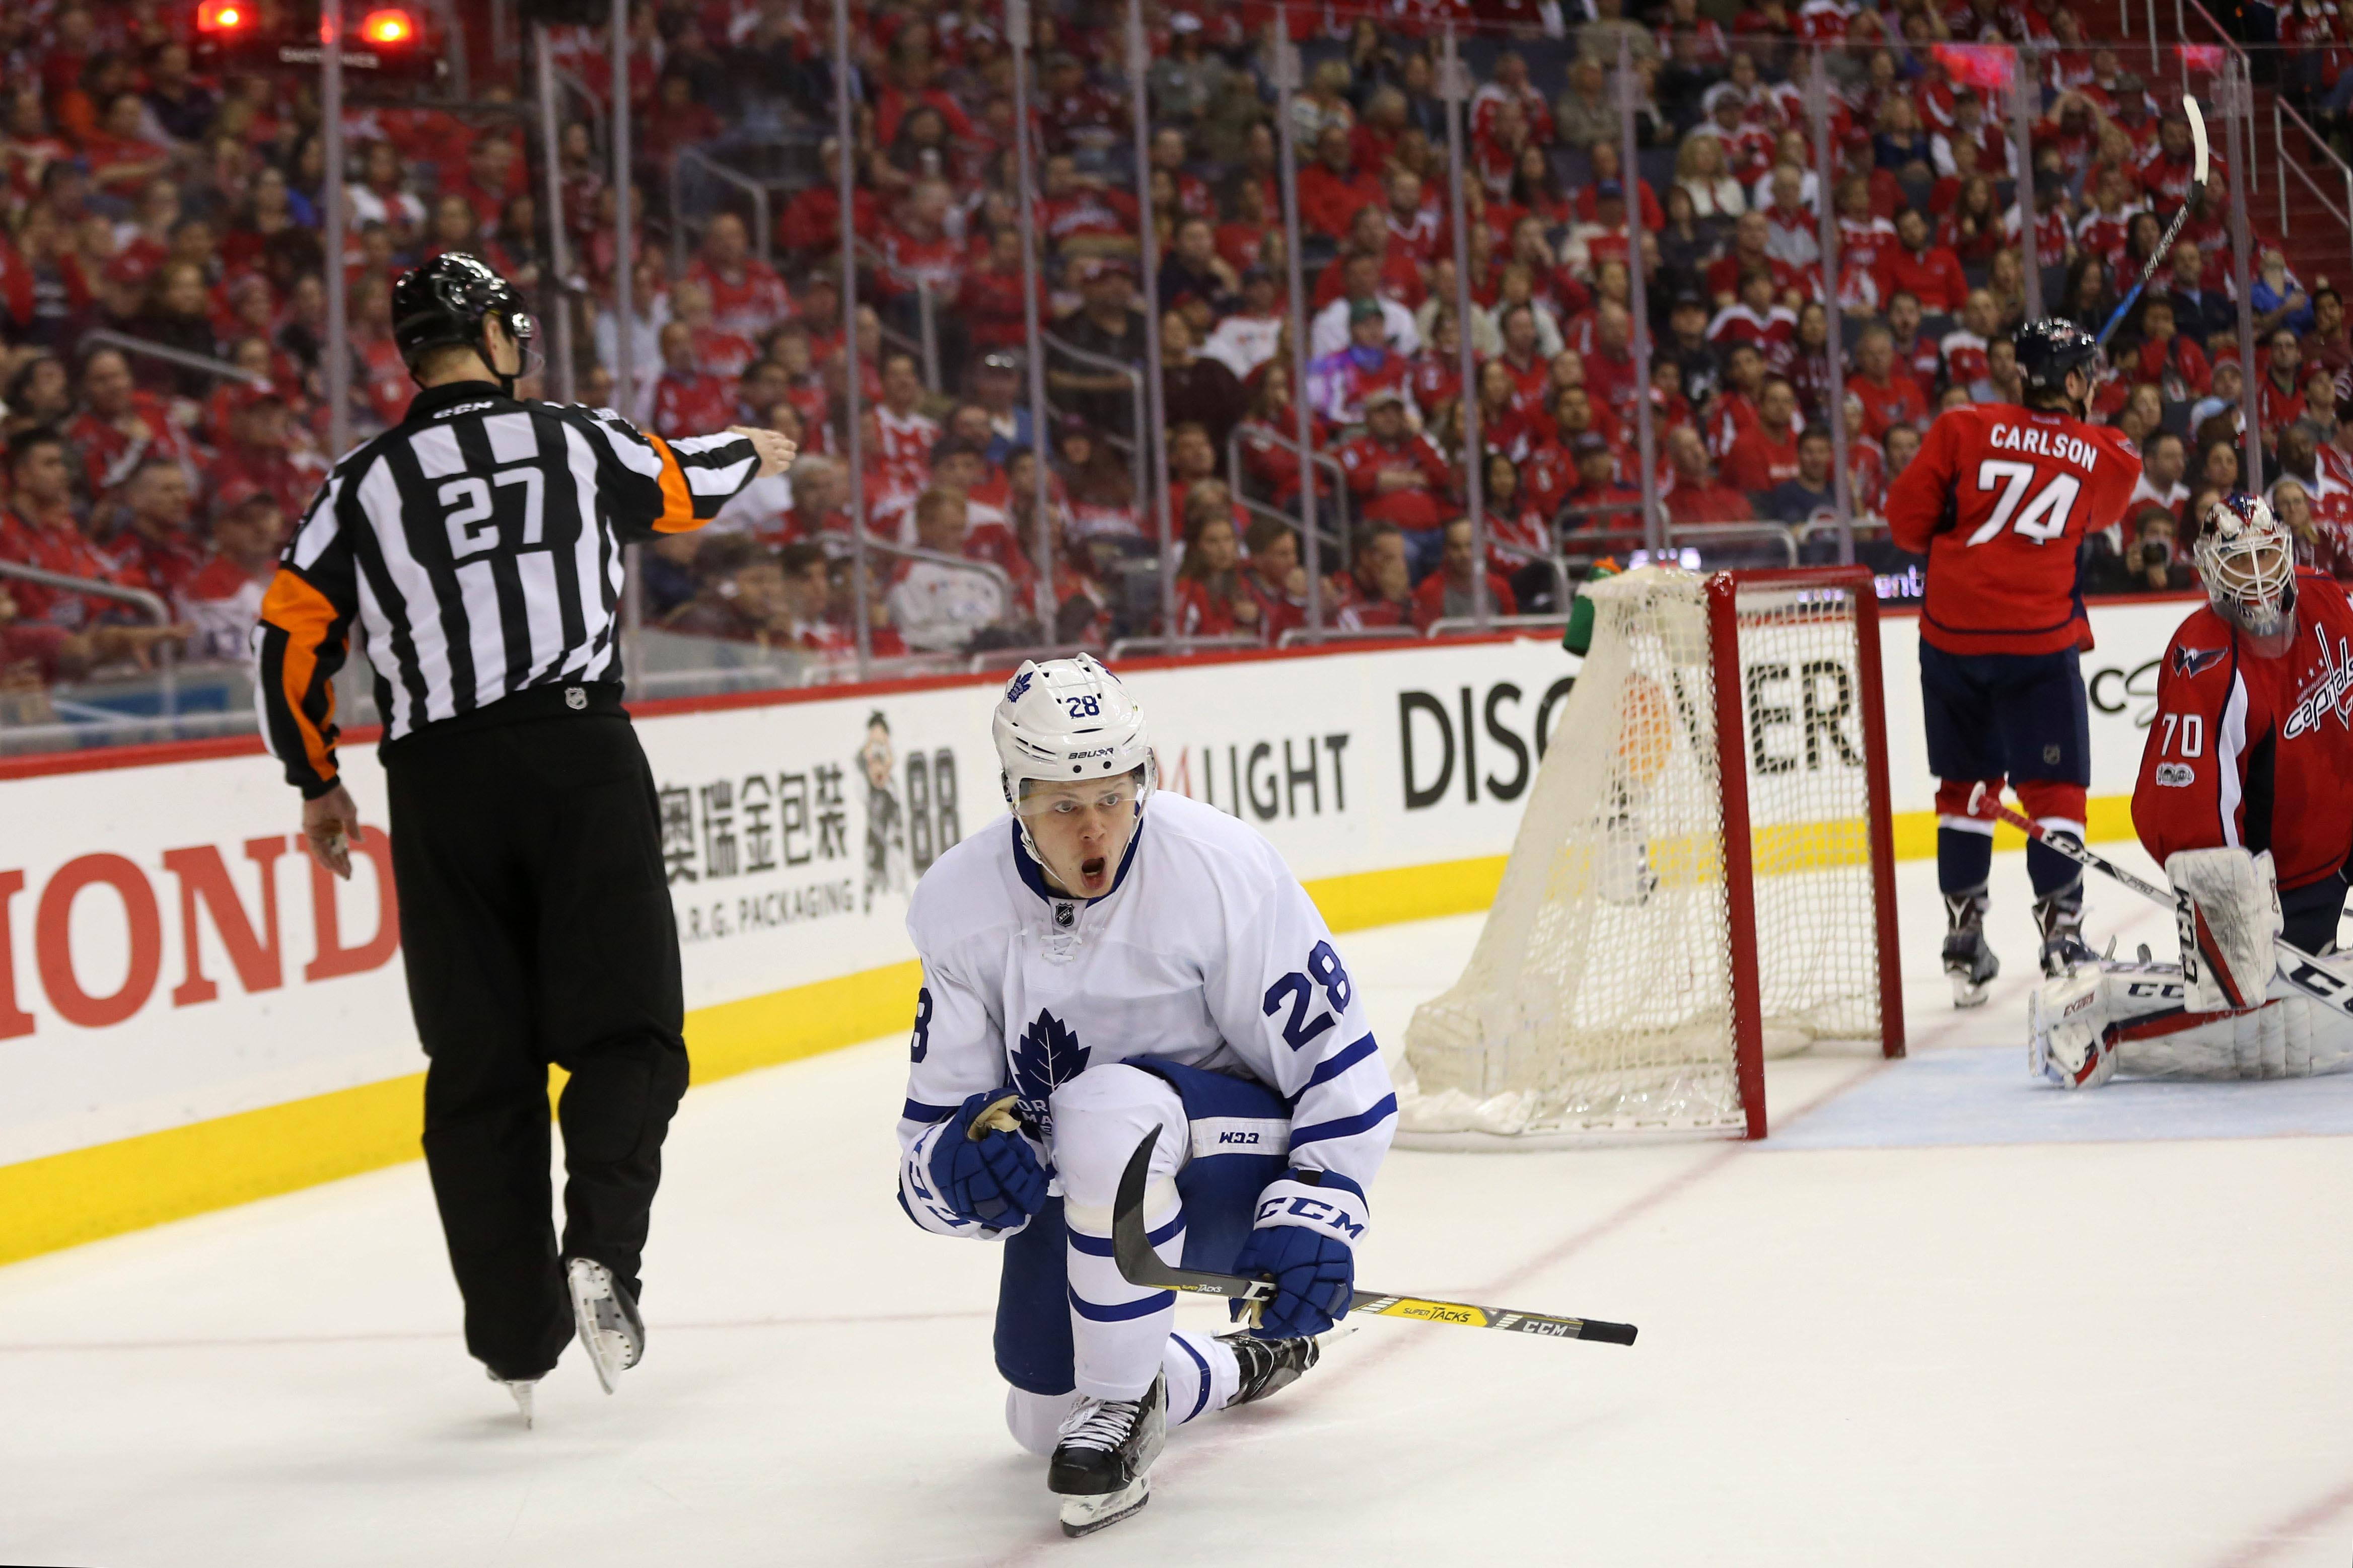 10014676-nhl-stanley-cup-playoffs-toronto-maple-leafs-at-washington-capitals